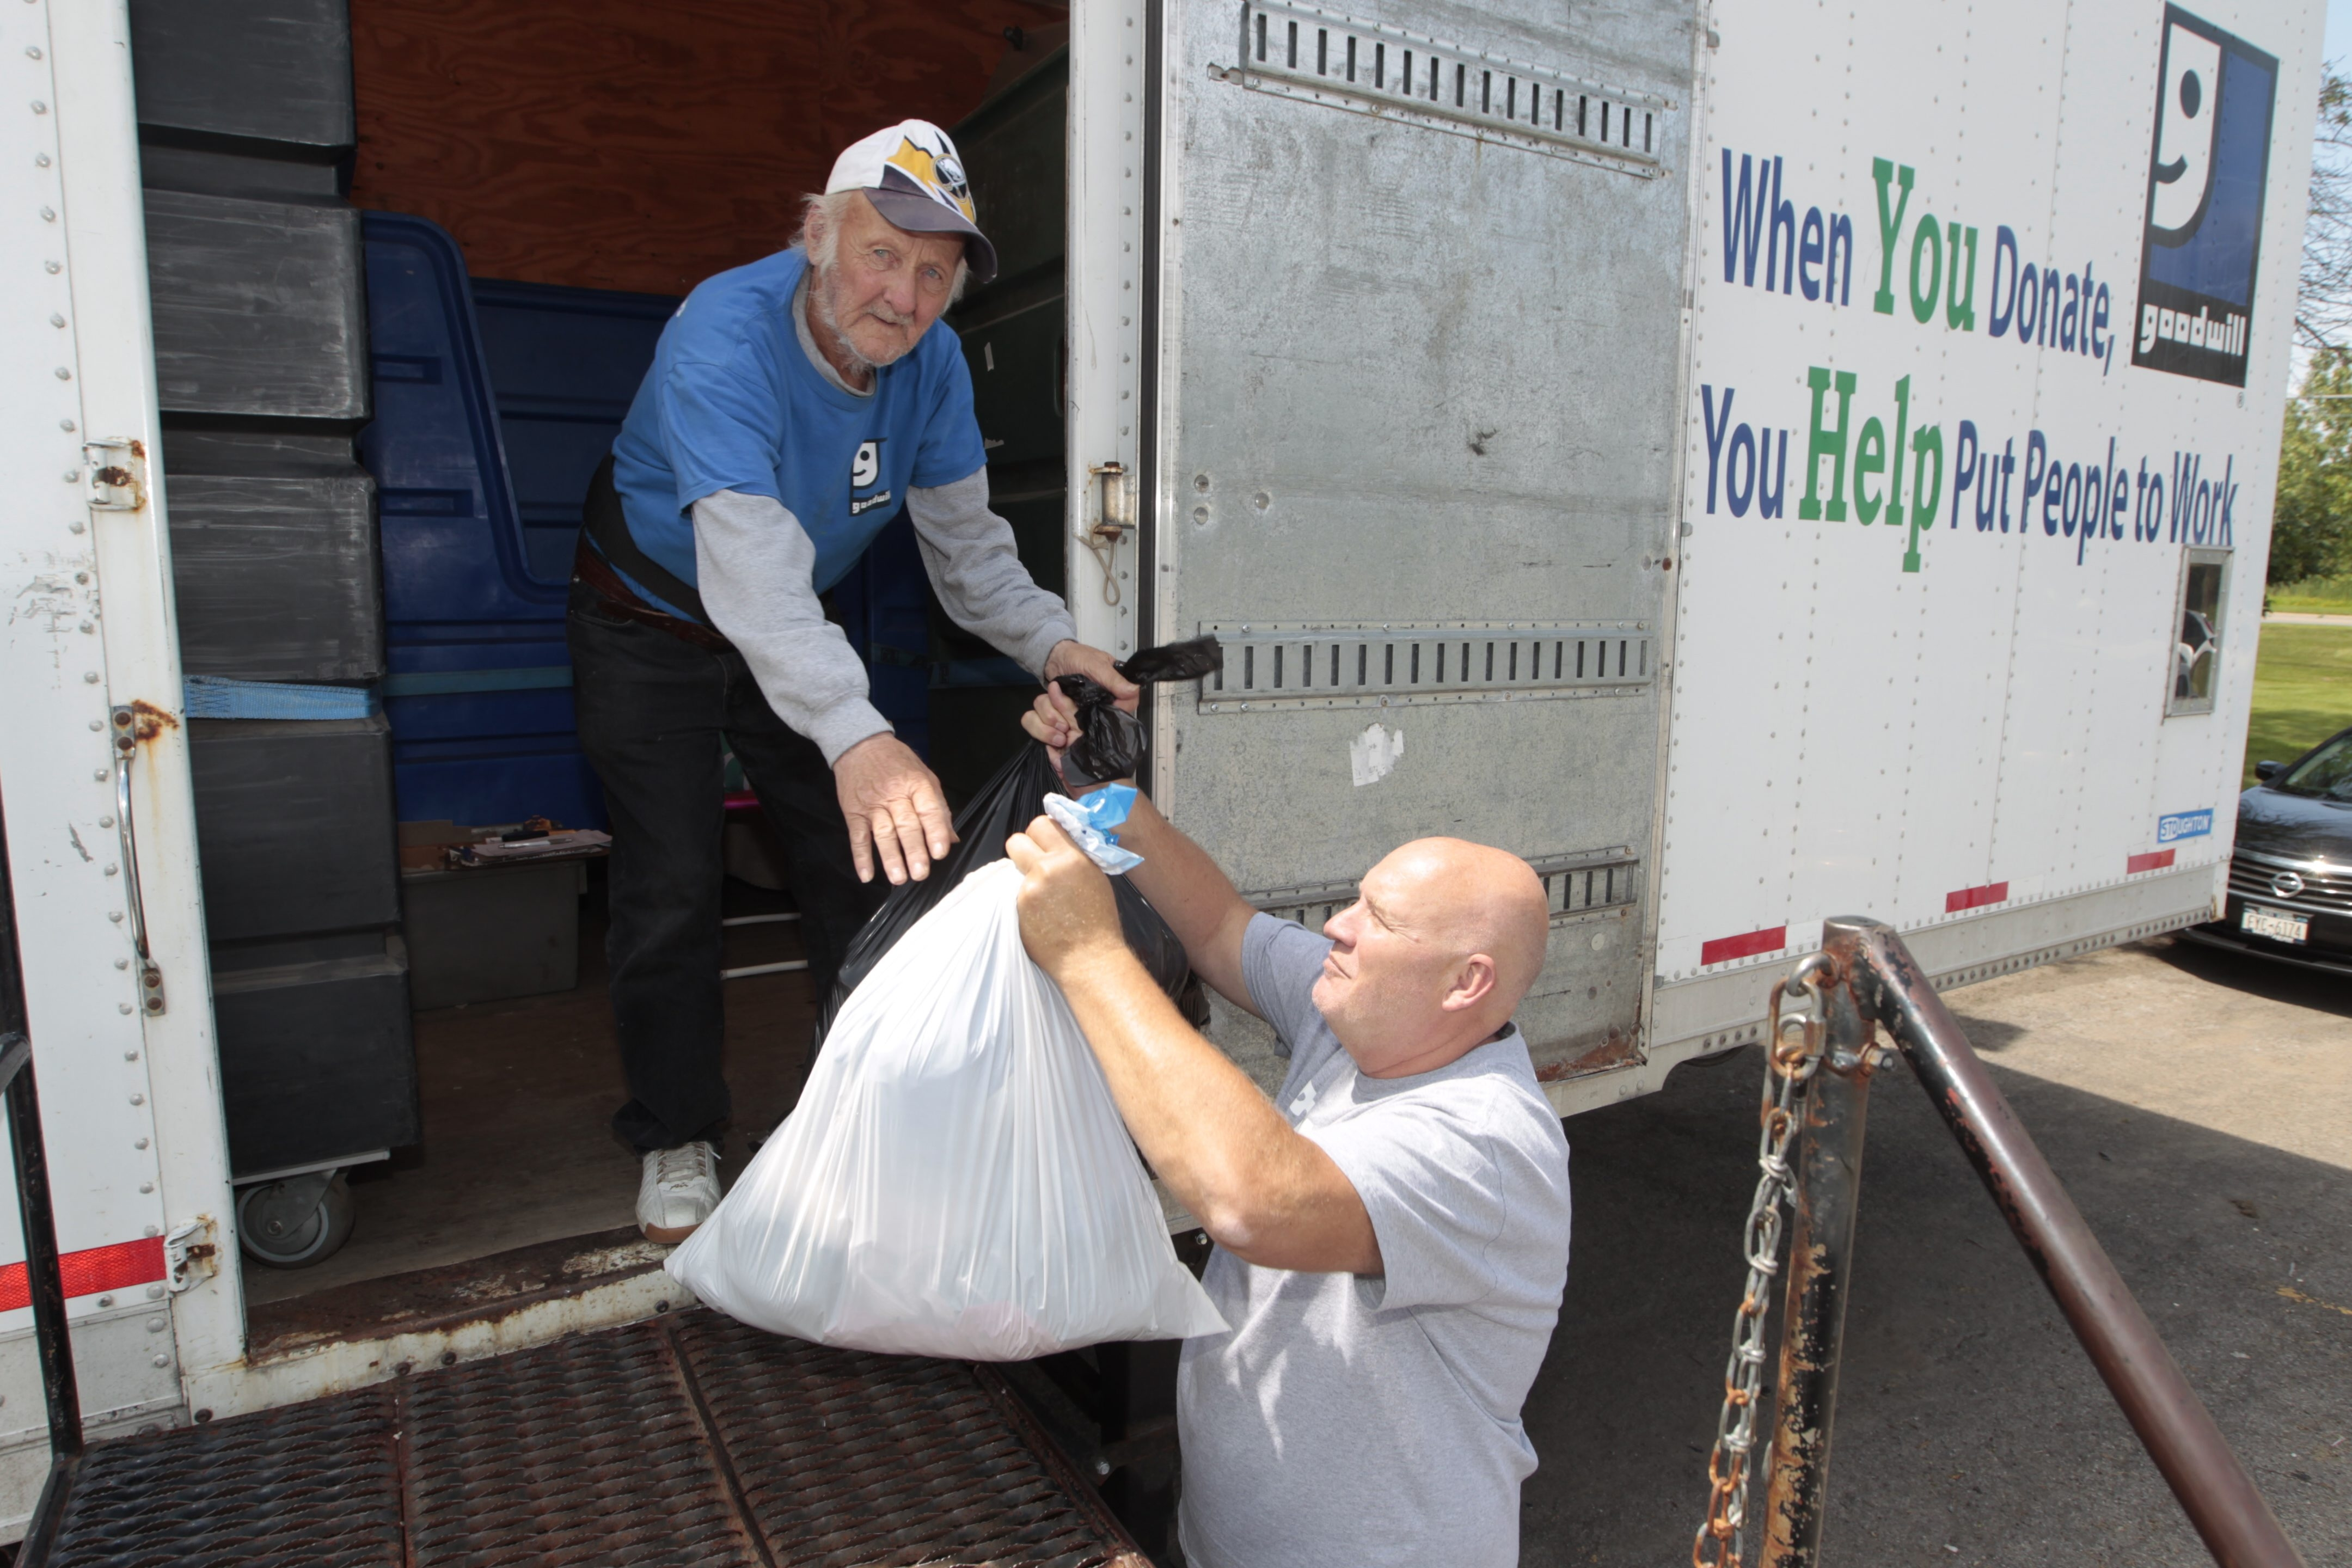 Buffalo native Ed Cummings has worked at Goodwill Industries for 43 years, earning a reputation as the go-to donations man. Though he has worked other jobs throughout his life, Cummings said that working the donation trailer at Maple and Tranist roads in Amherst is his favorite.